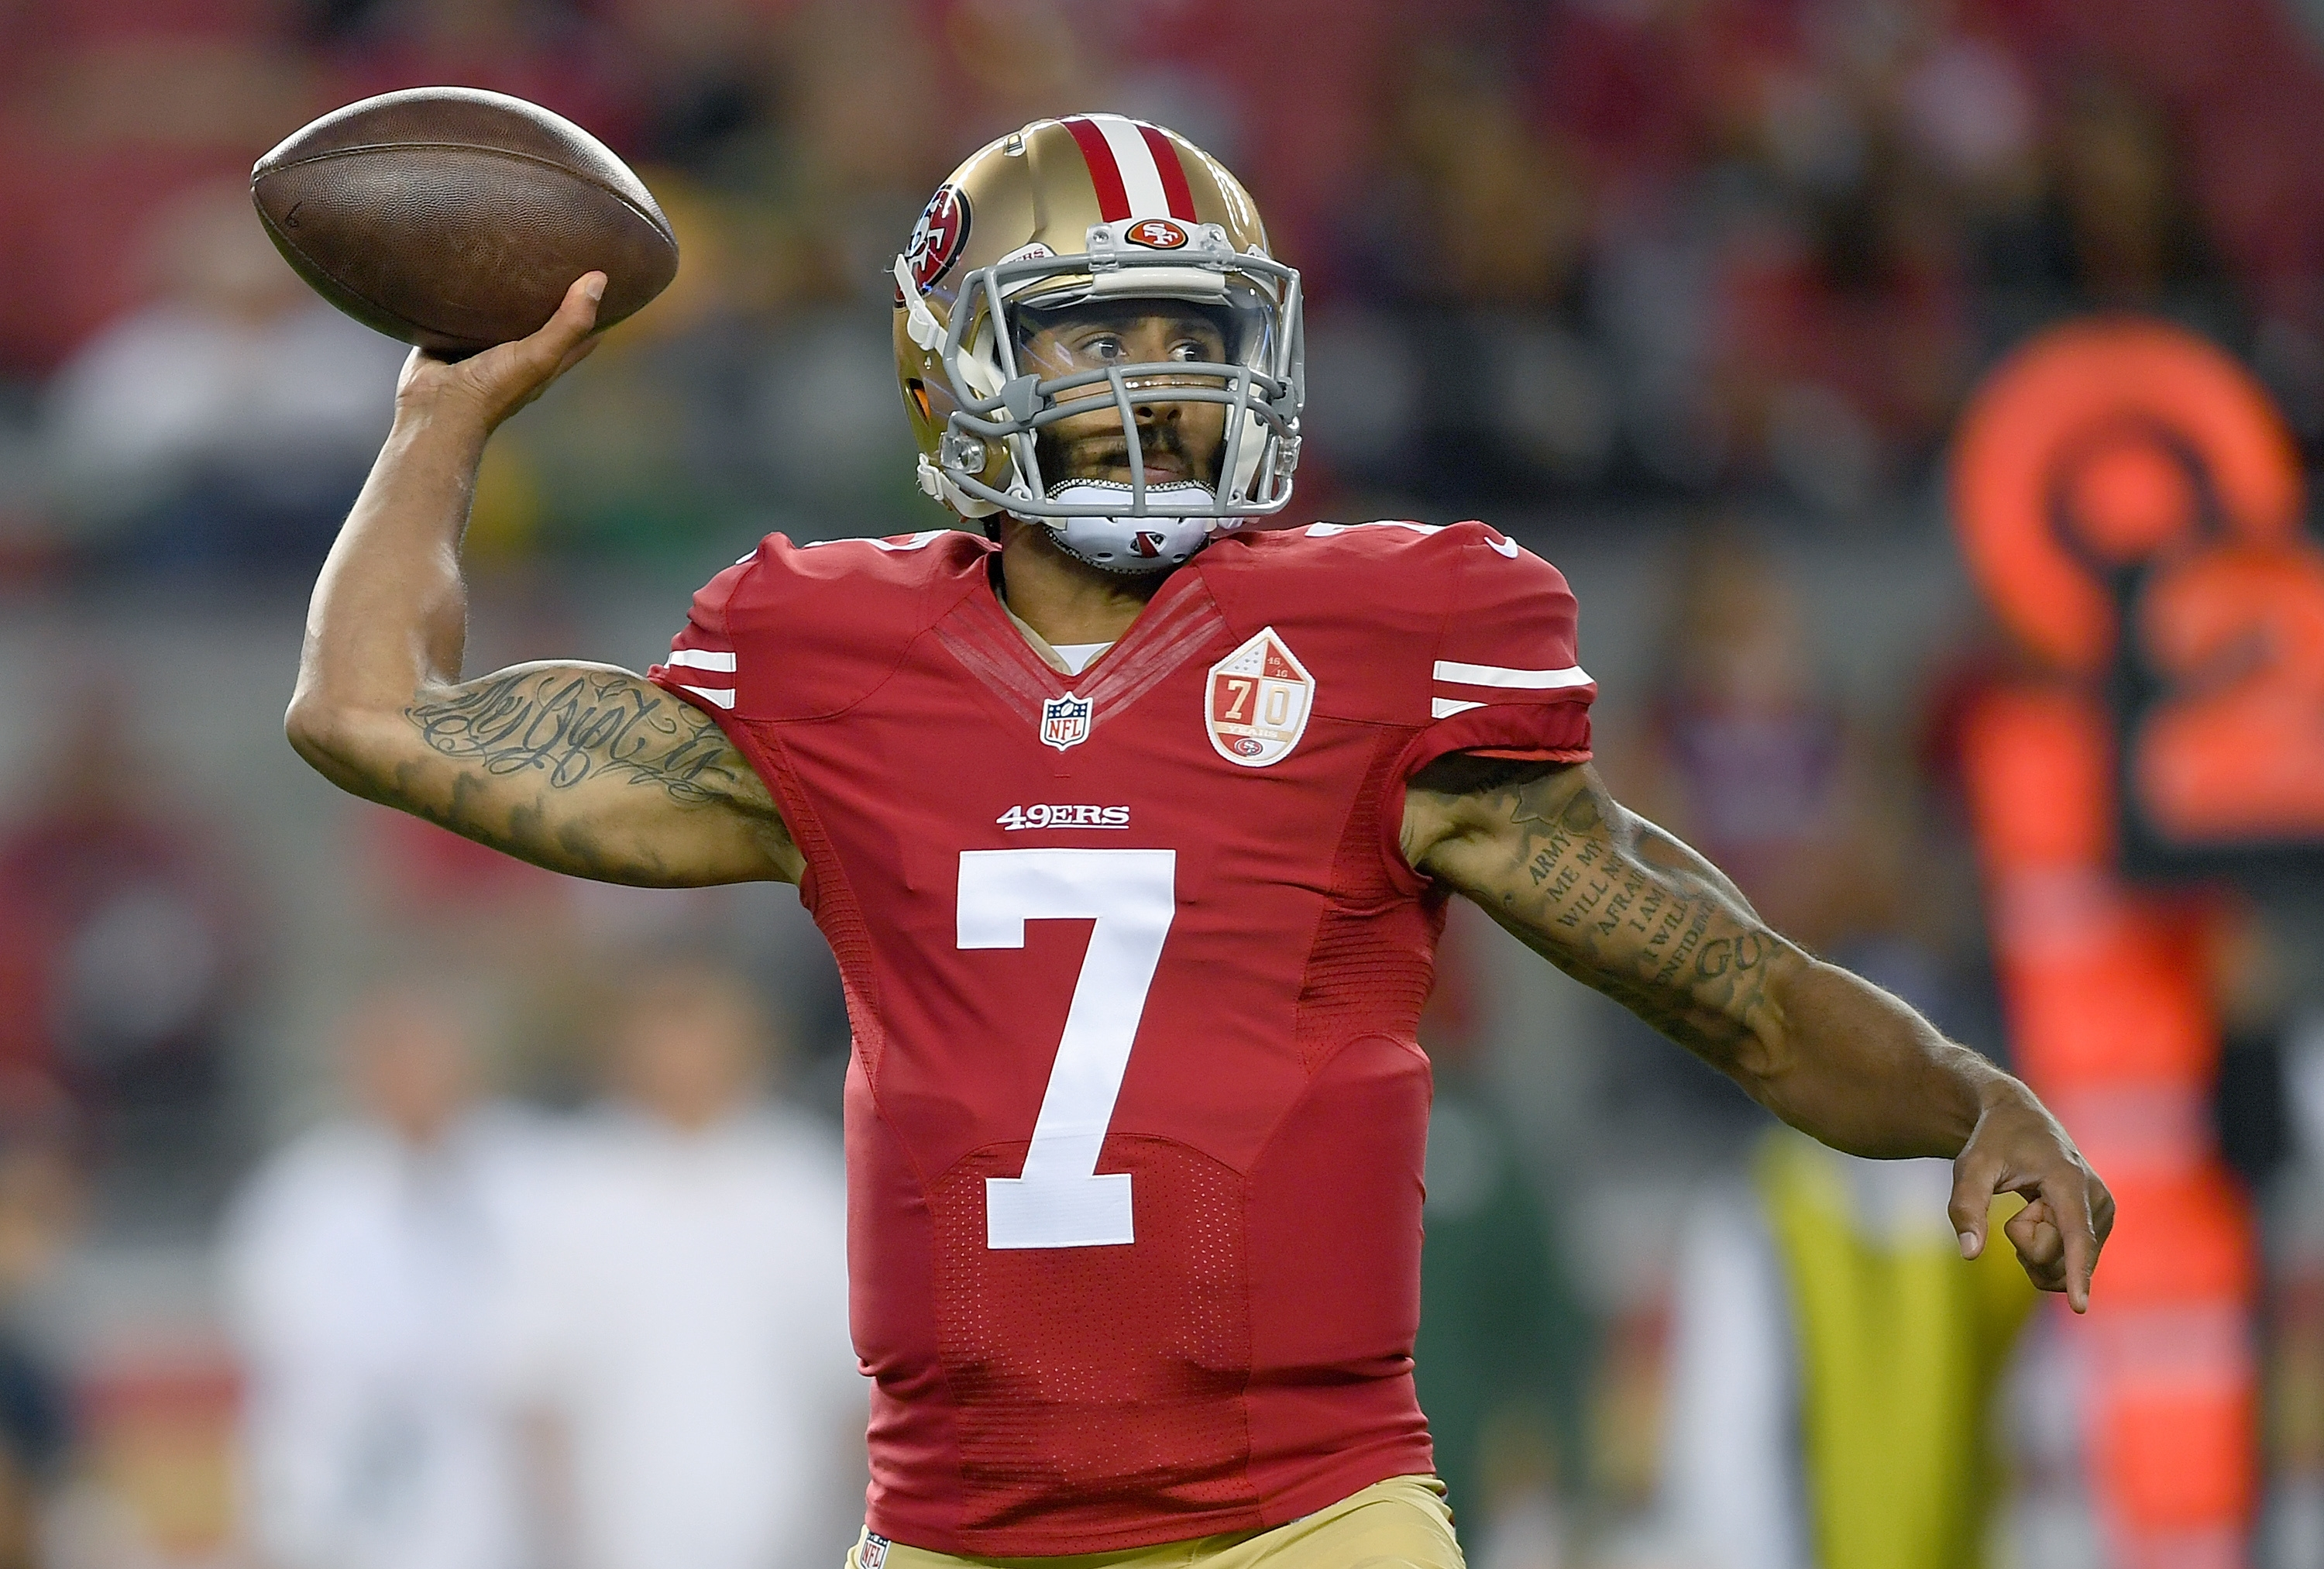 Colin Kaepernick staged his own silent protest during the National Anthem Friday.